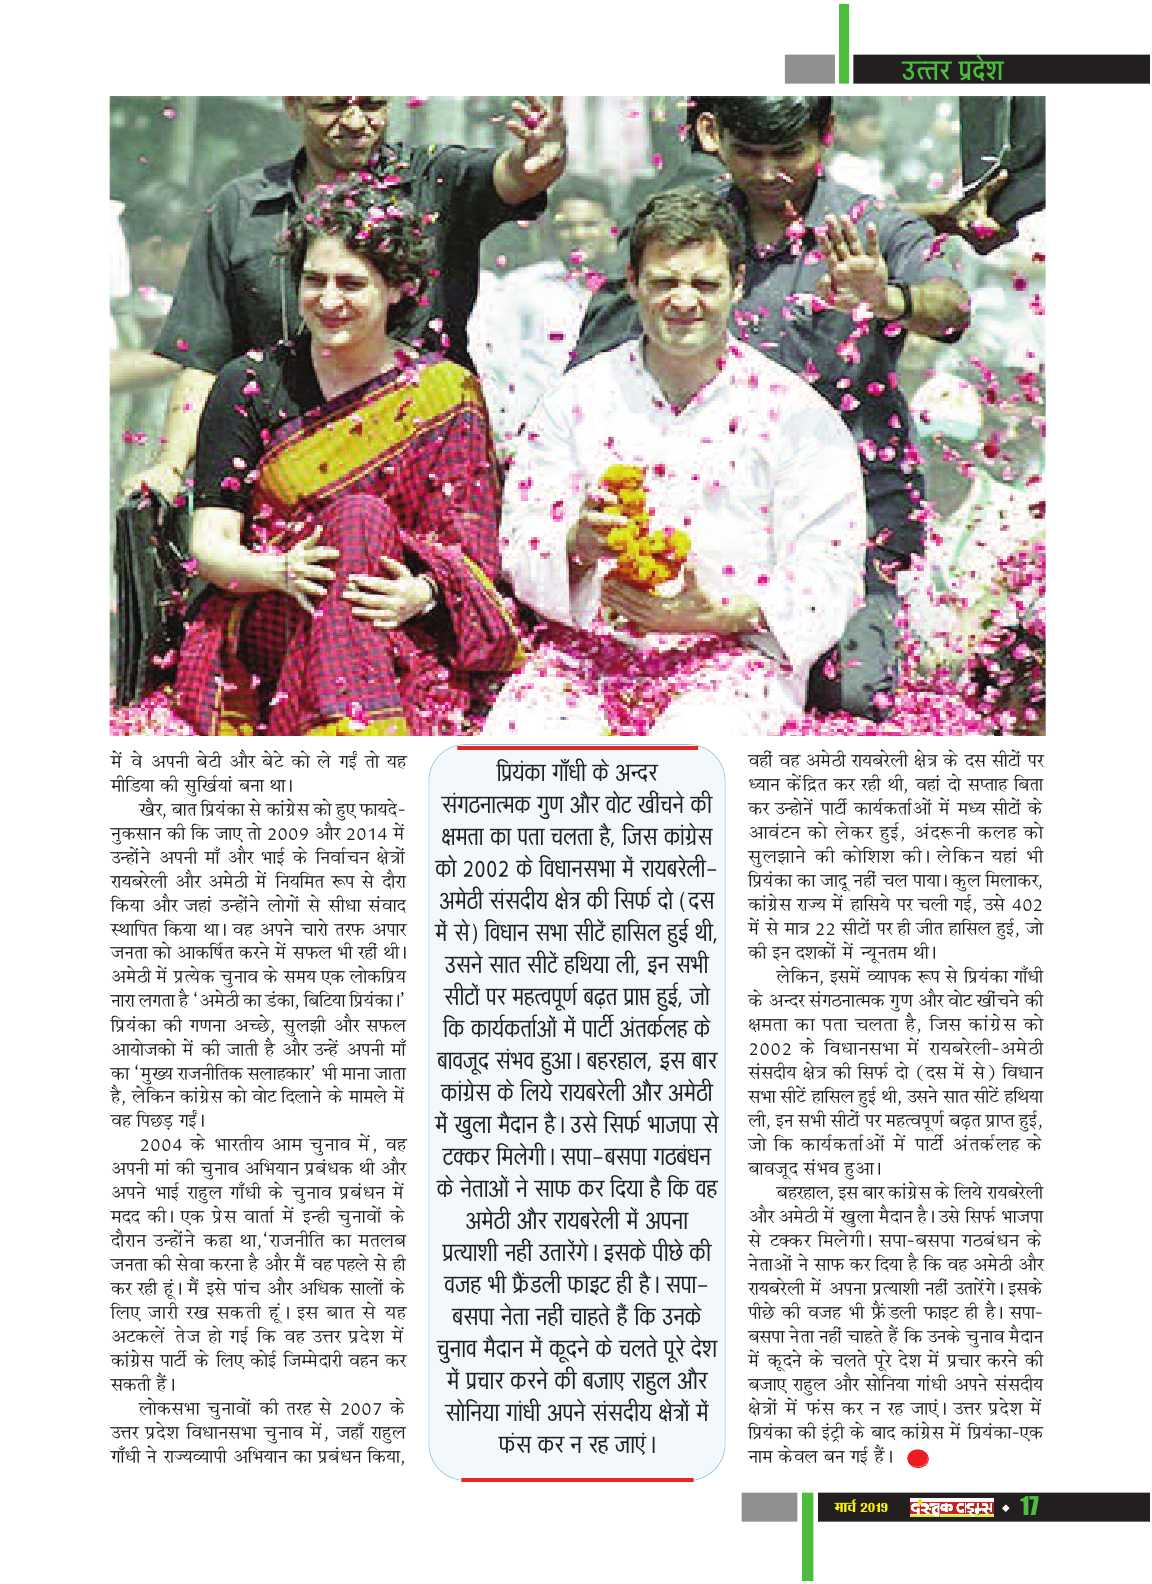 March 2019_Dastak Times new file19